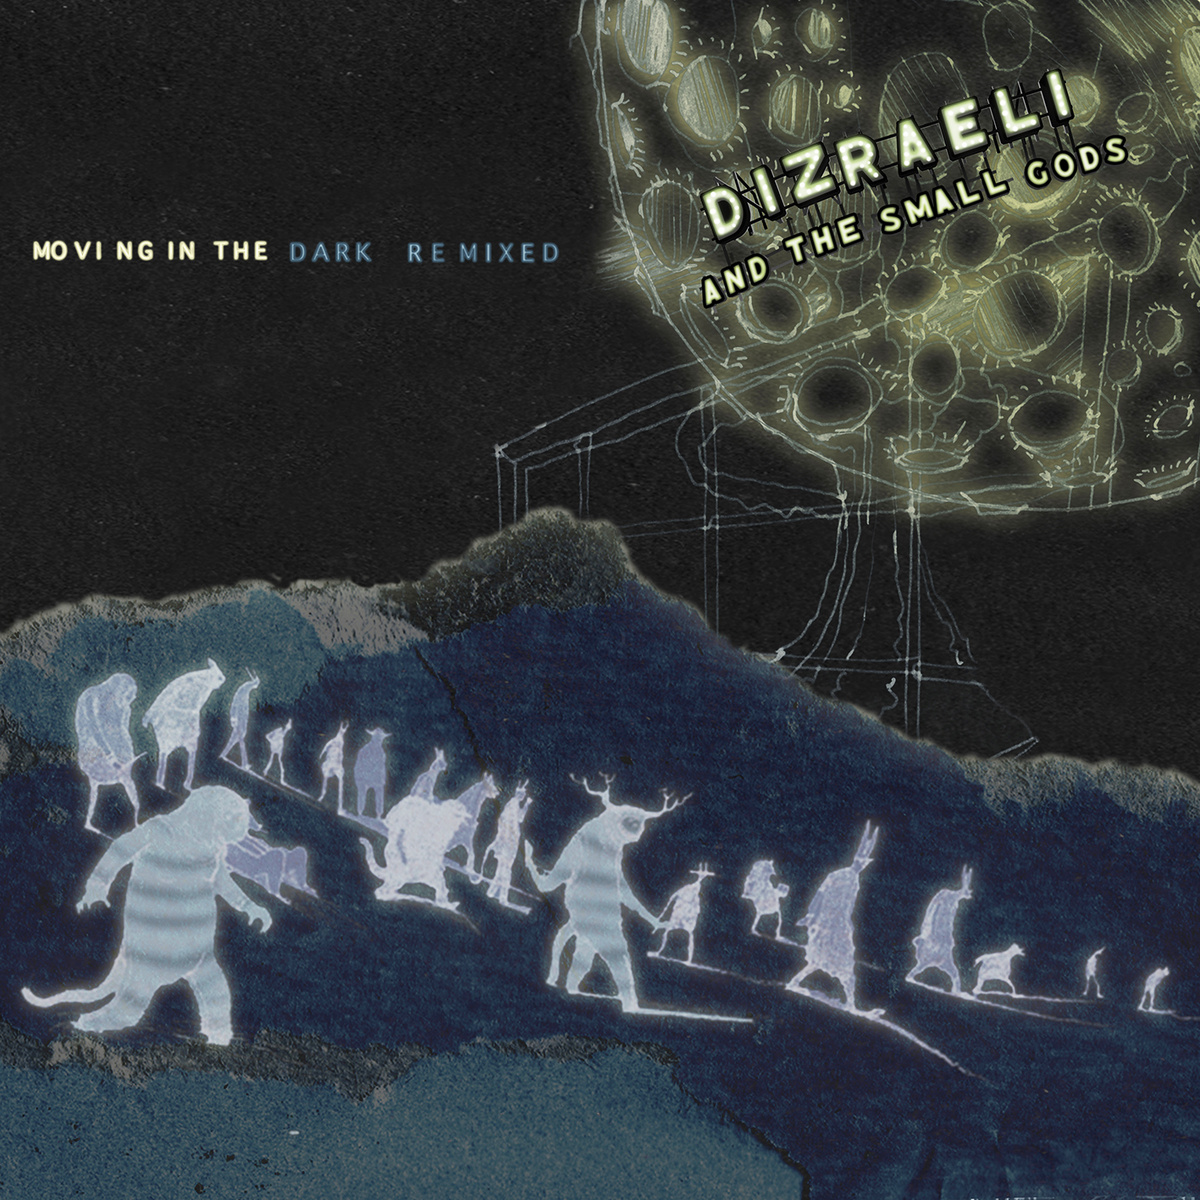 Dizraeli & The Small Gods - Moving In The Dark Remixed